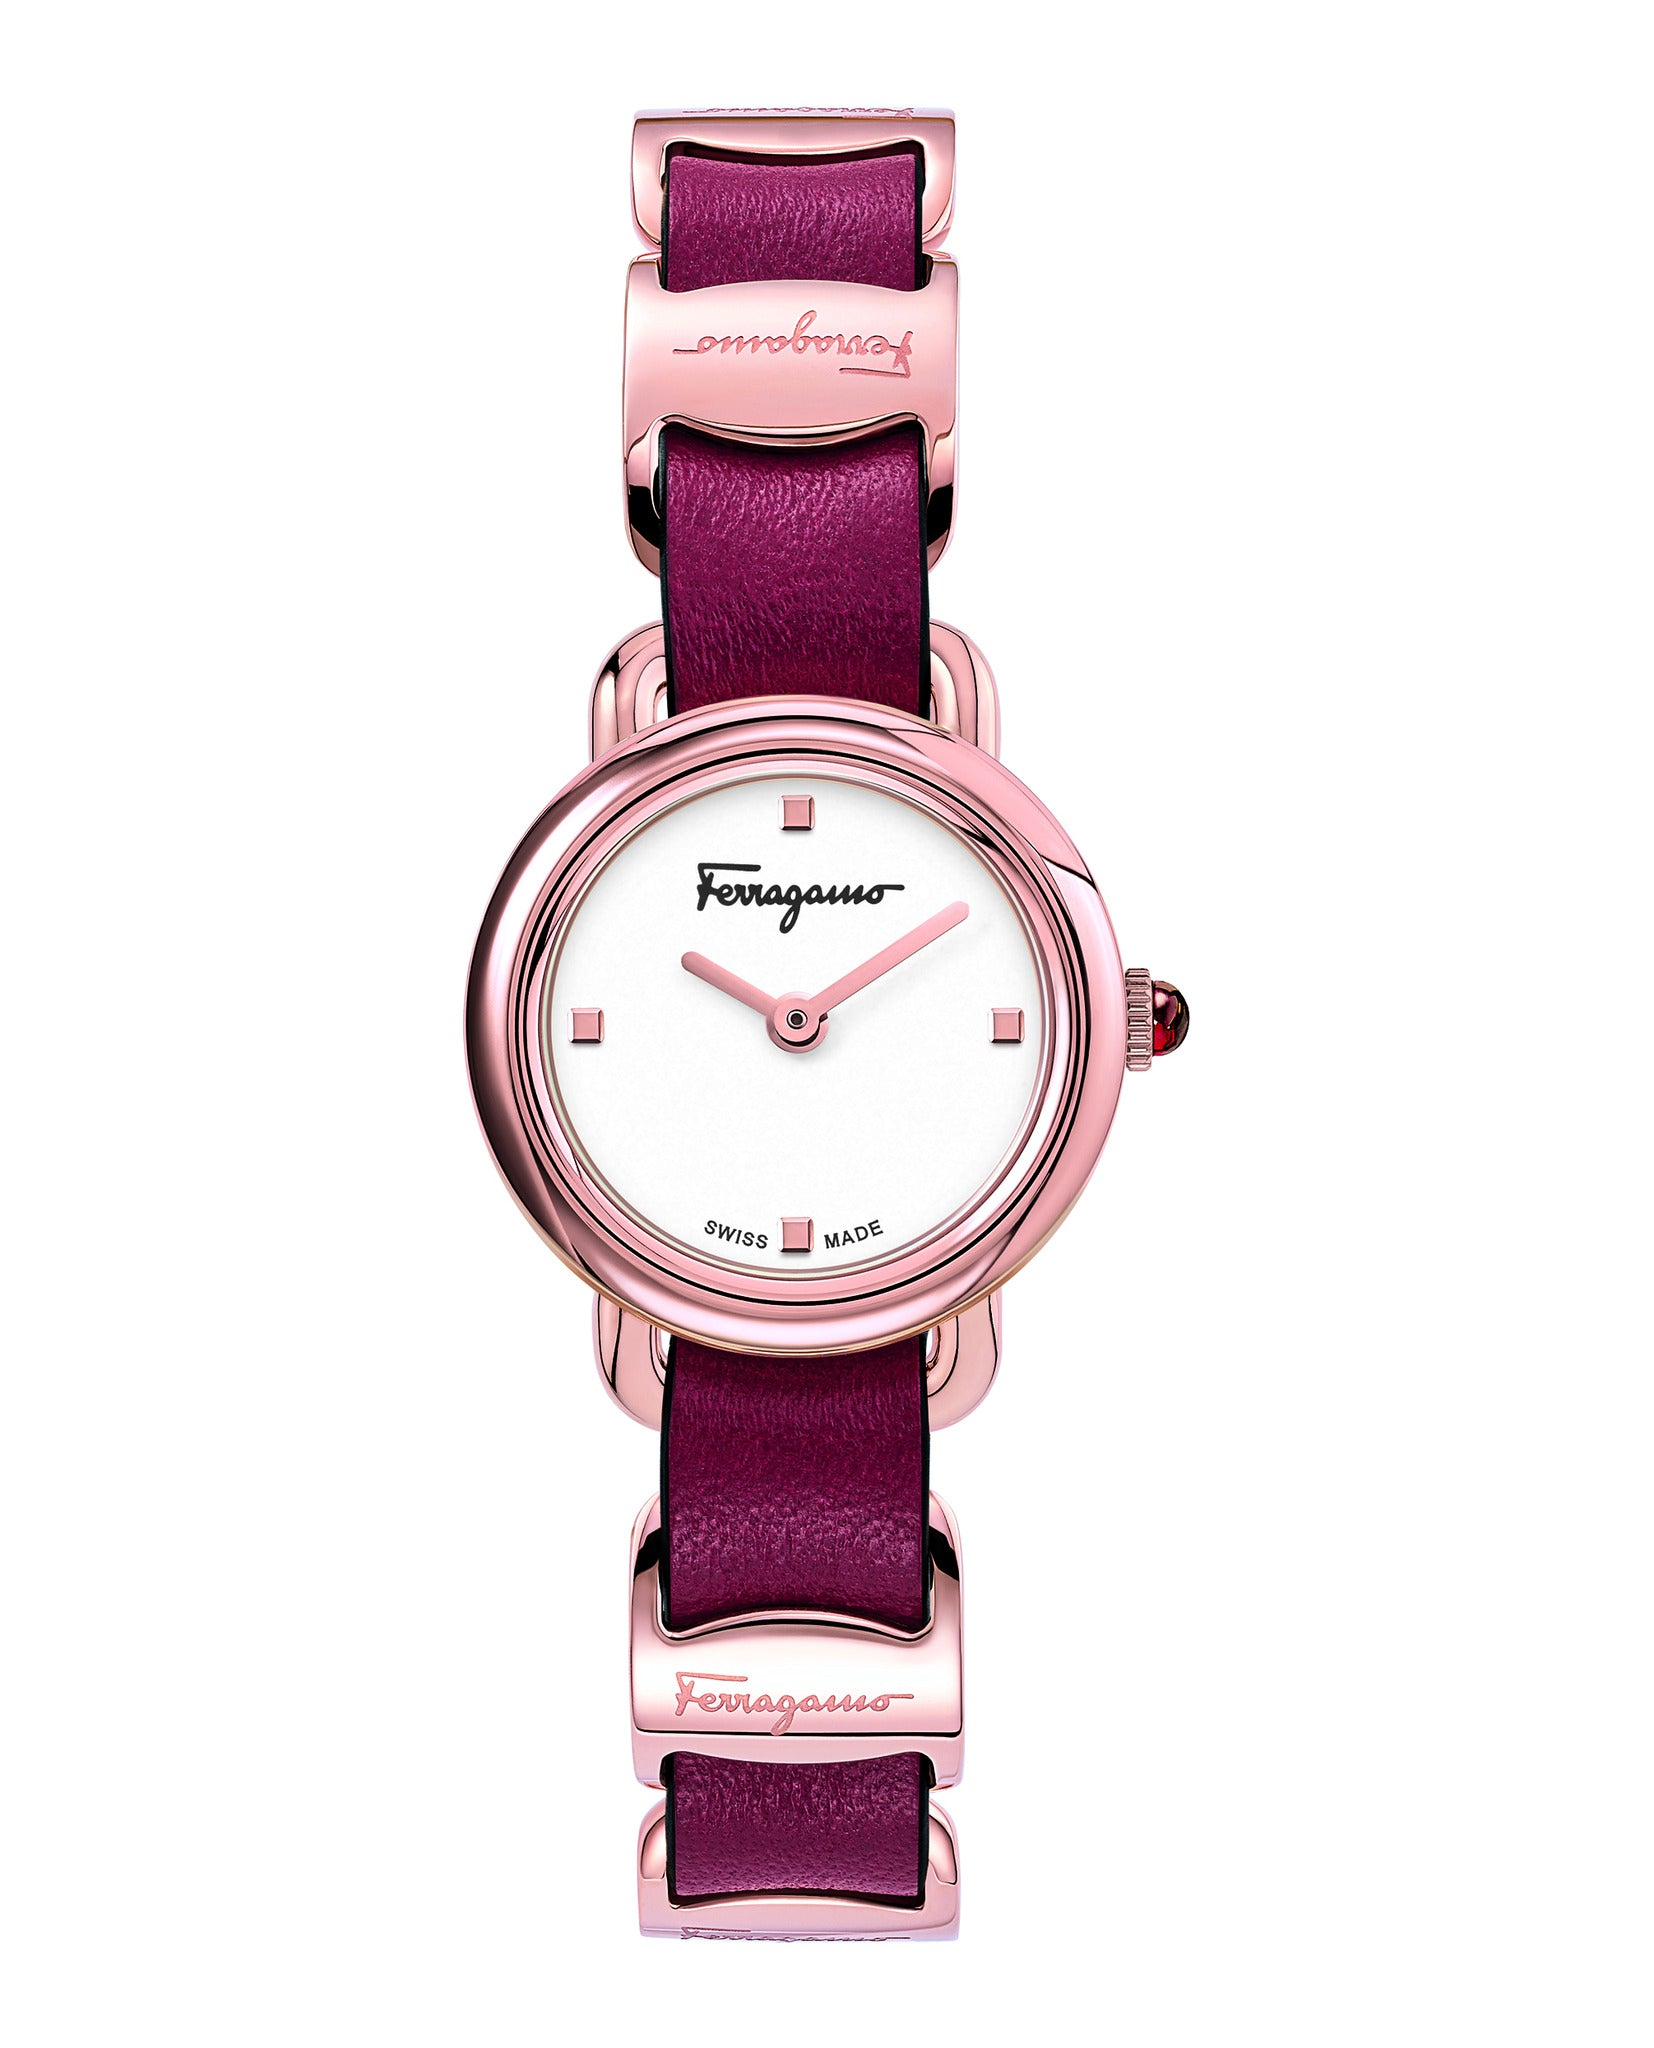 Salvatore Ferragamo Varina Watch